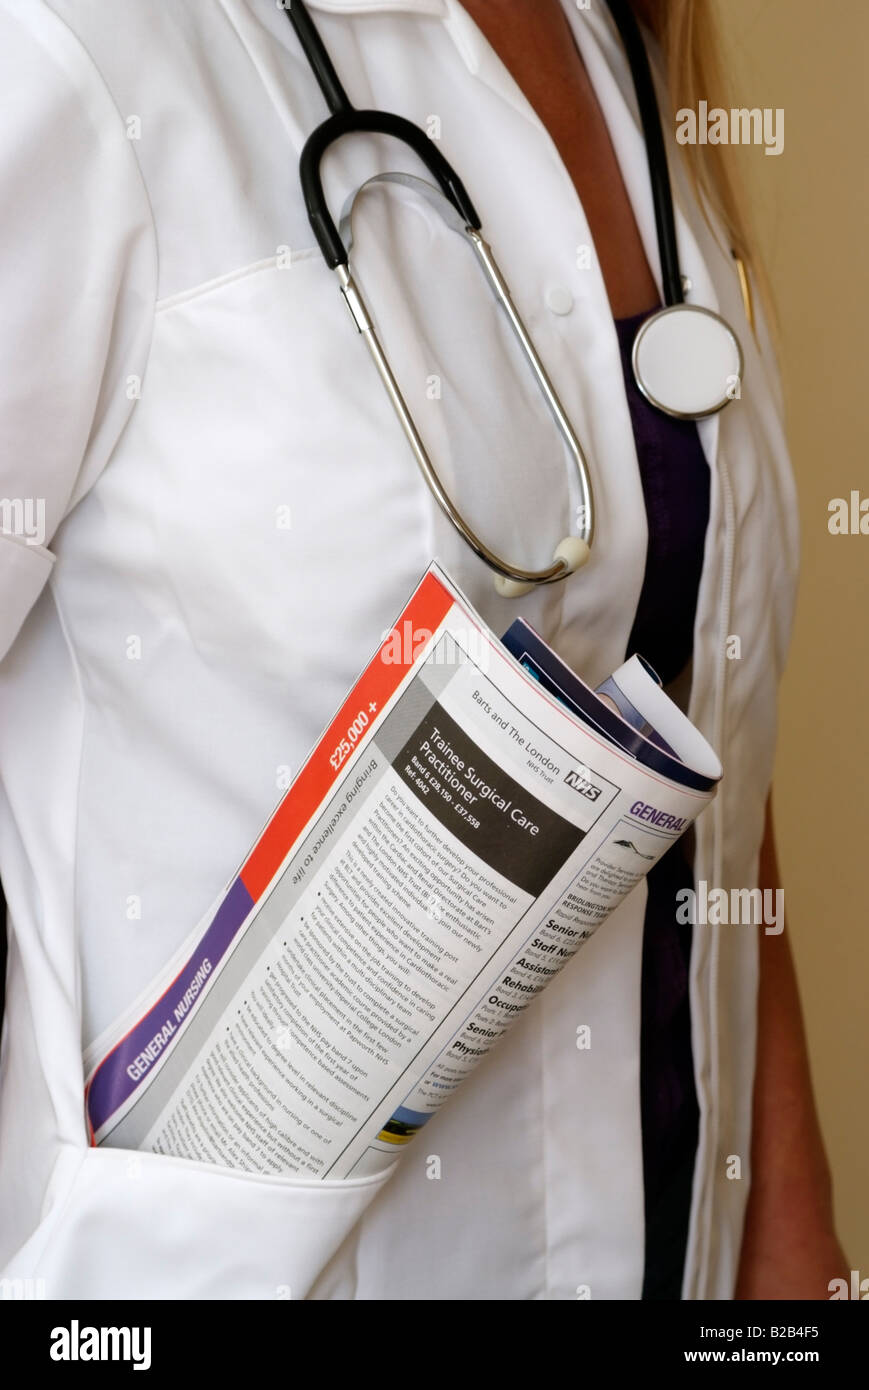 Job advert publication in uniform pocket of a member of the medical profession - Stock Image